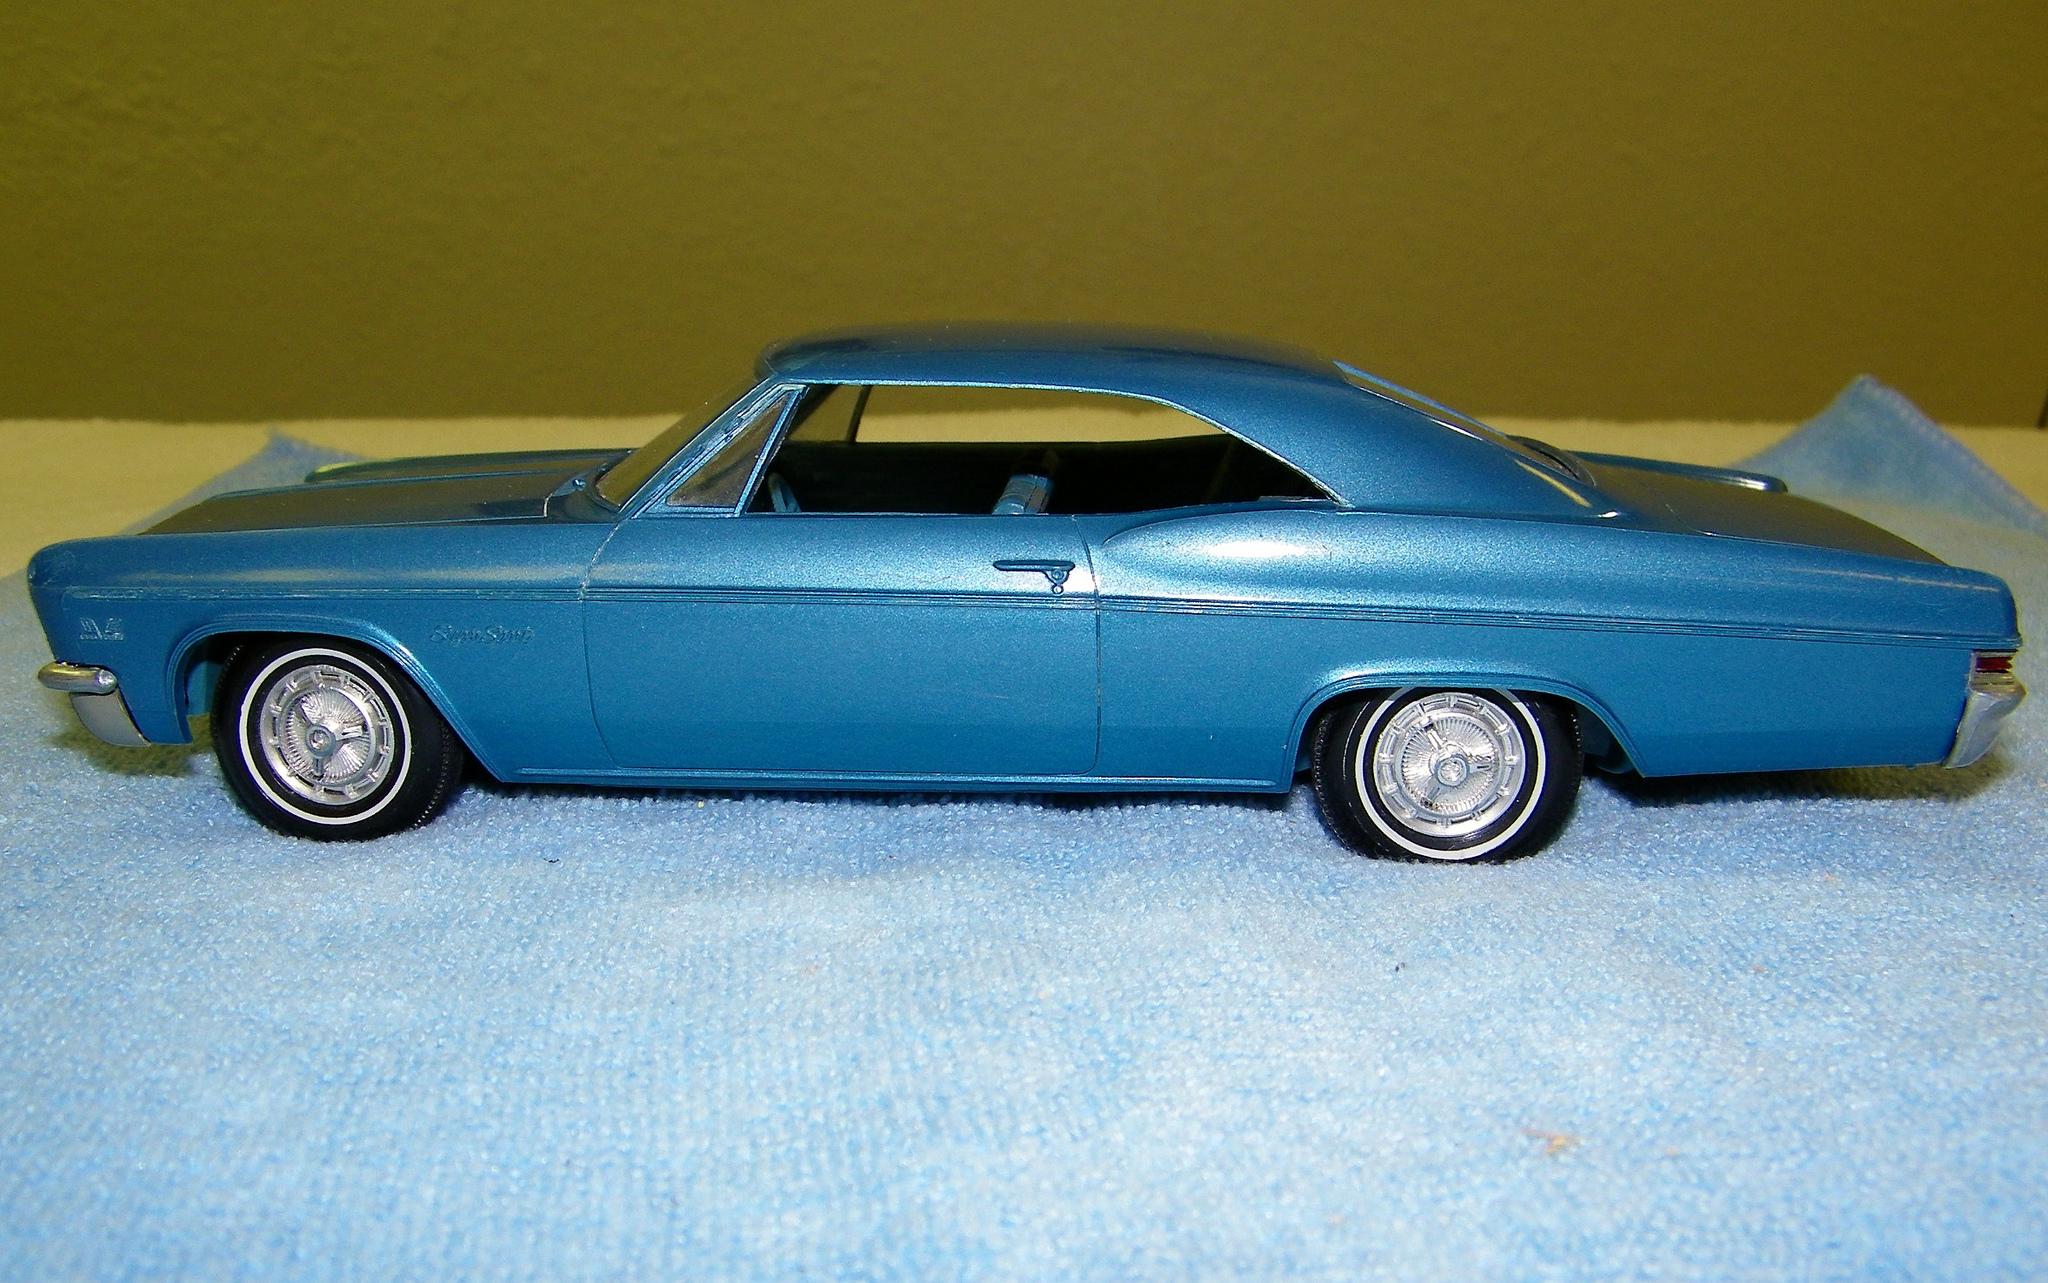 1966 chevrolet impala super sport hardtop promo model car model cars hobbydb. Black Bedroom Furniture Sets. Home Design Ideas